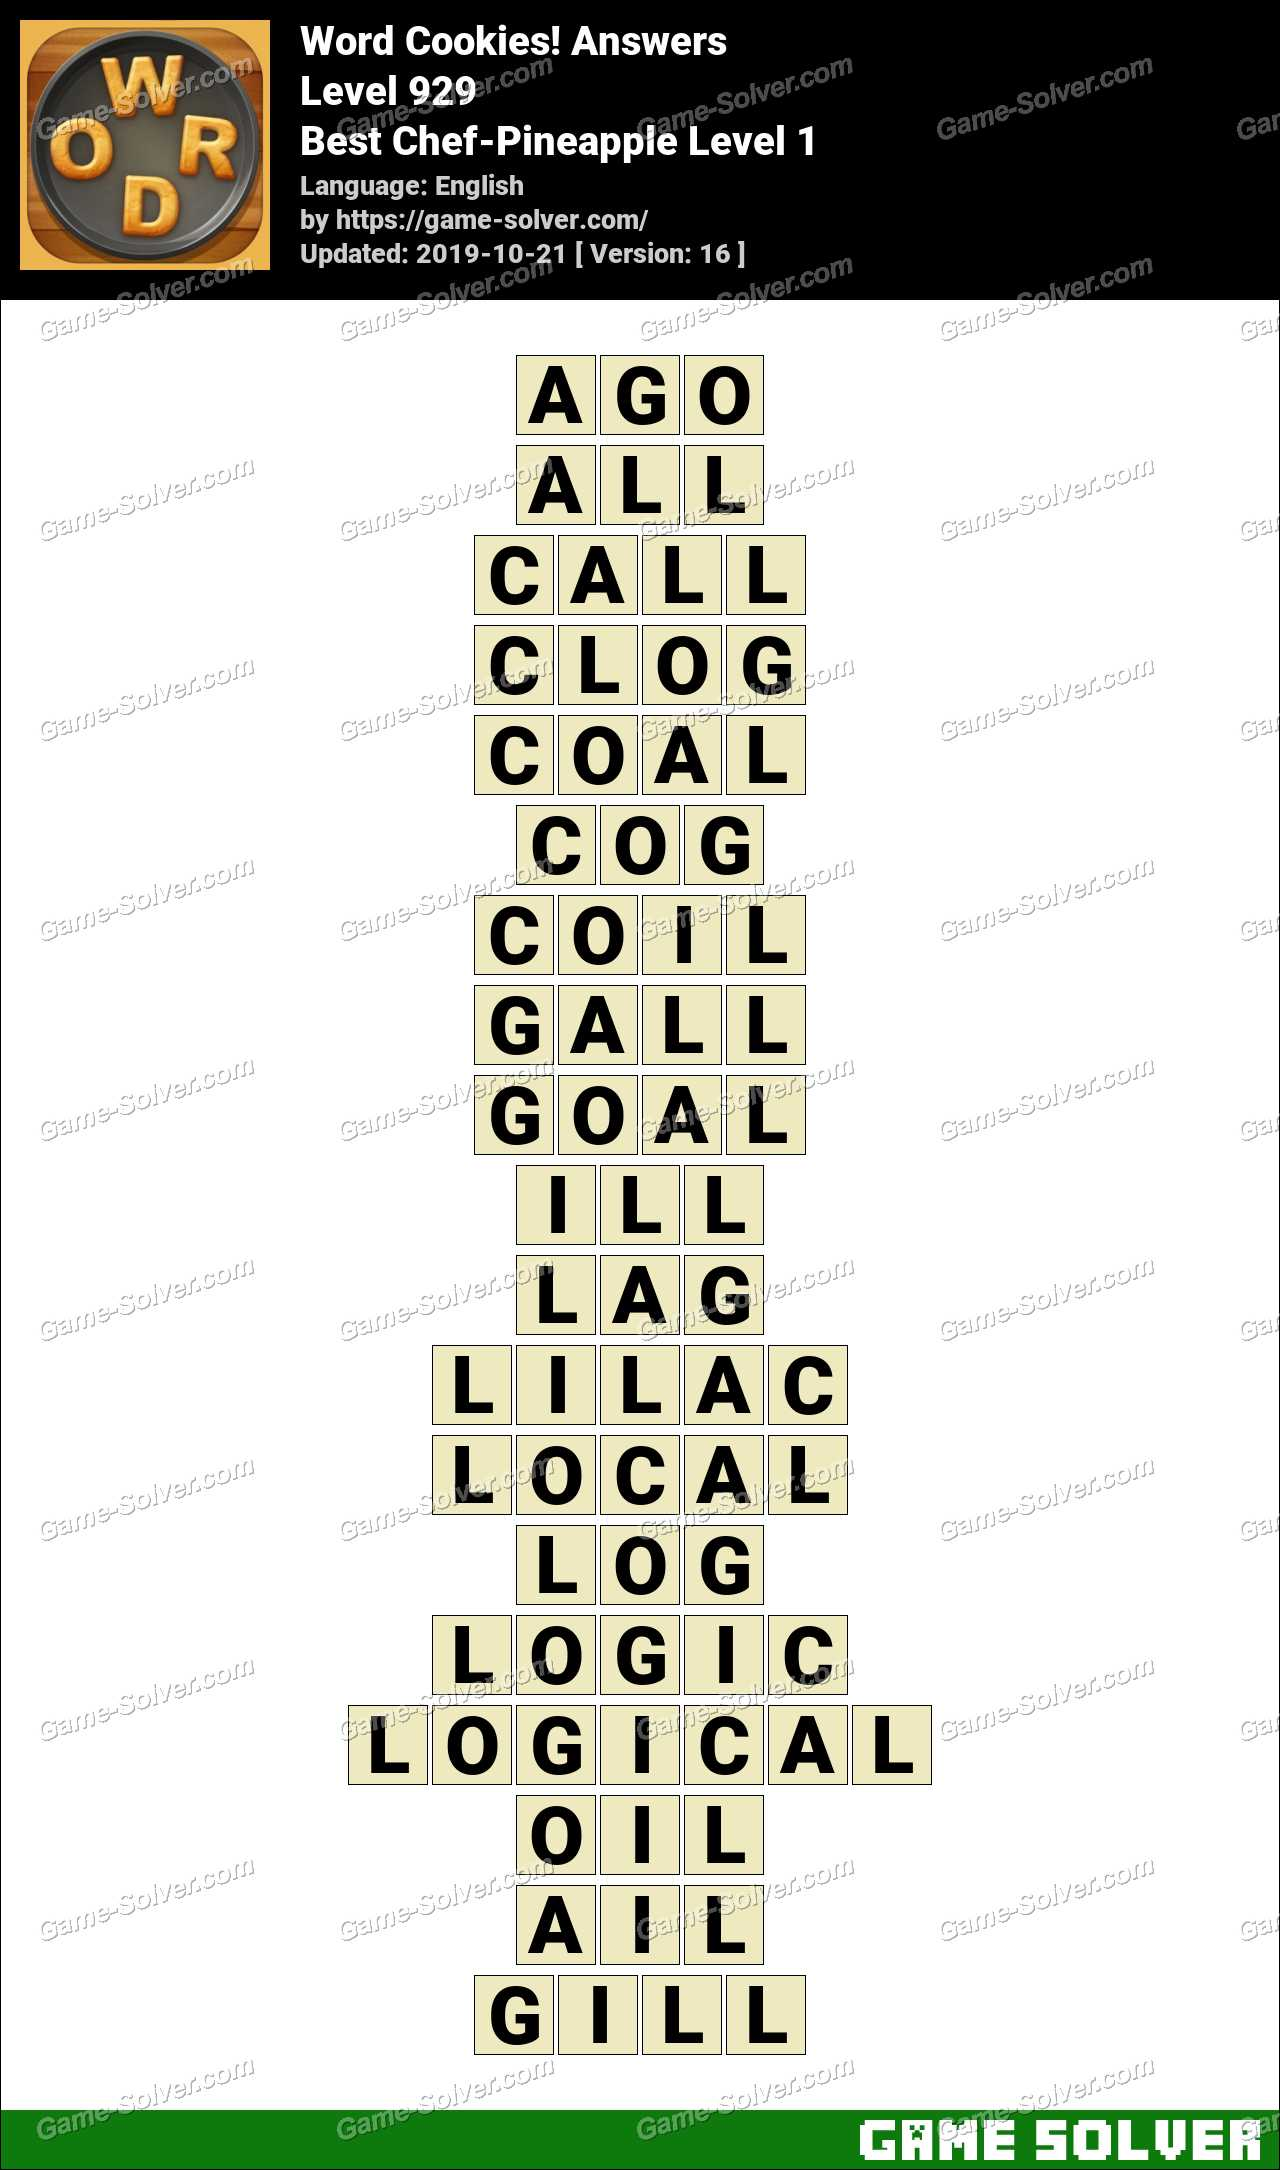 Word Cookies Best Chef-Pineapple Level 1 Answers